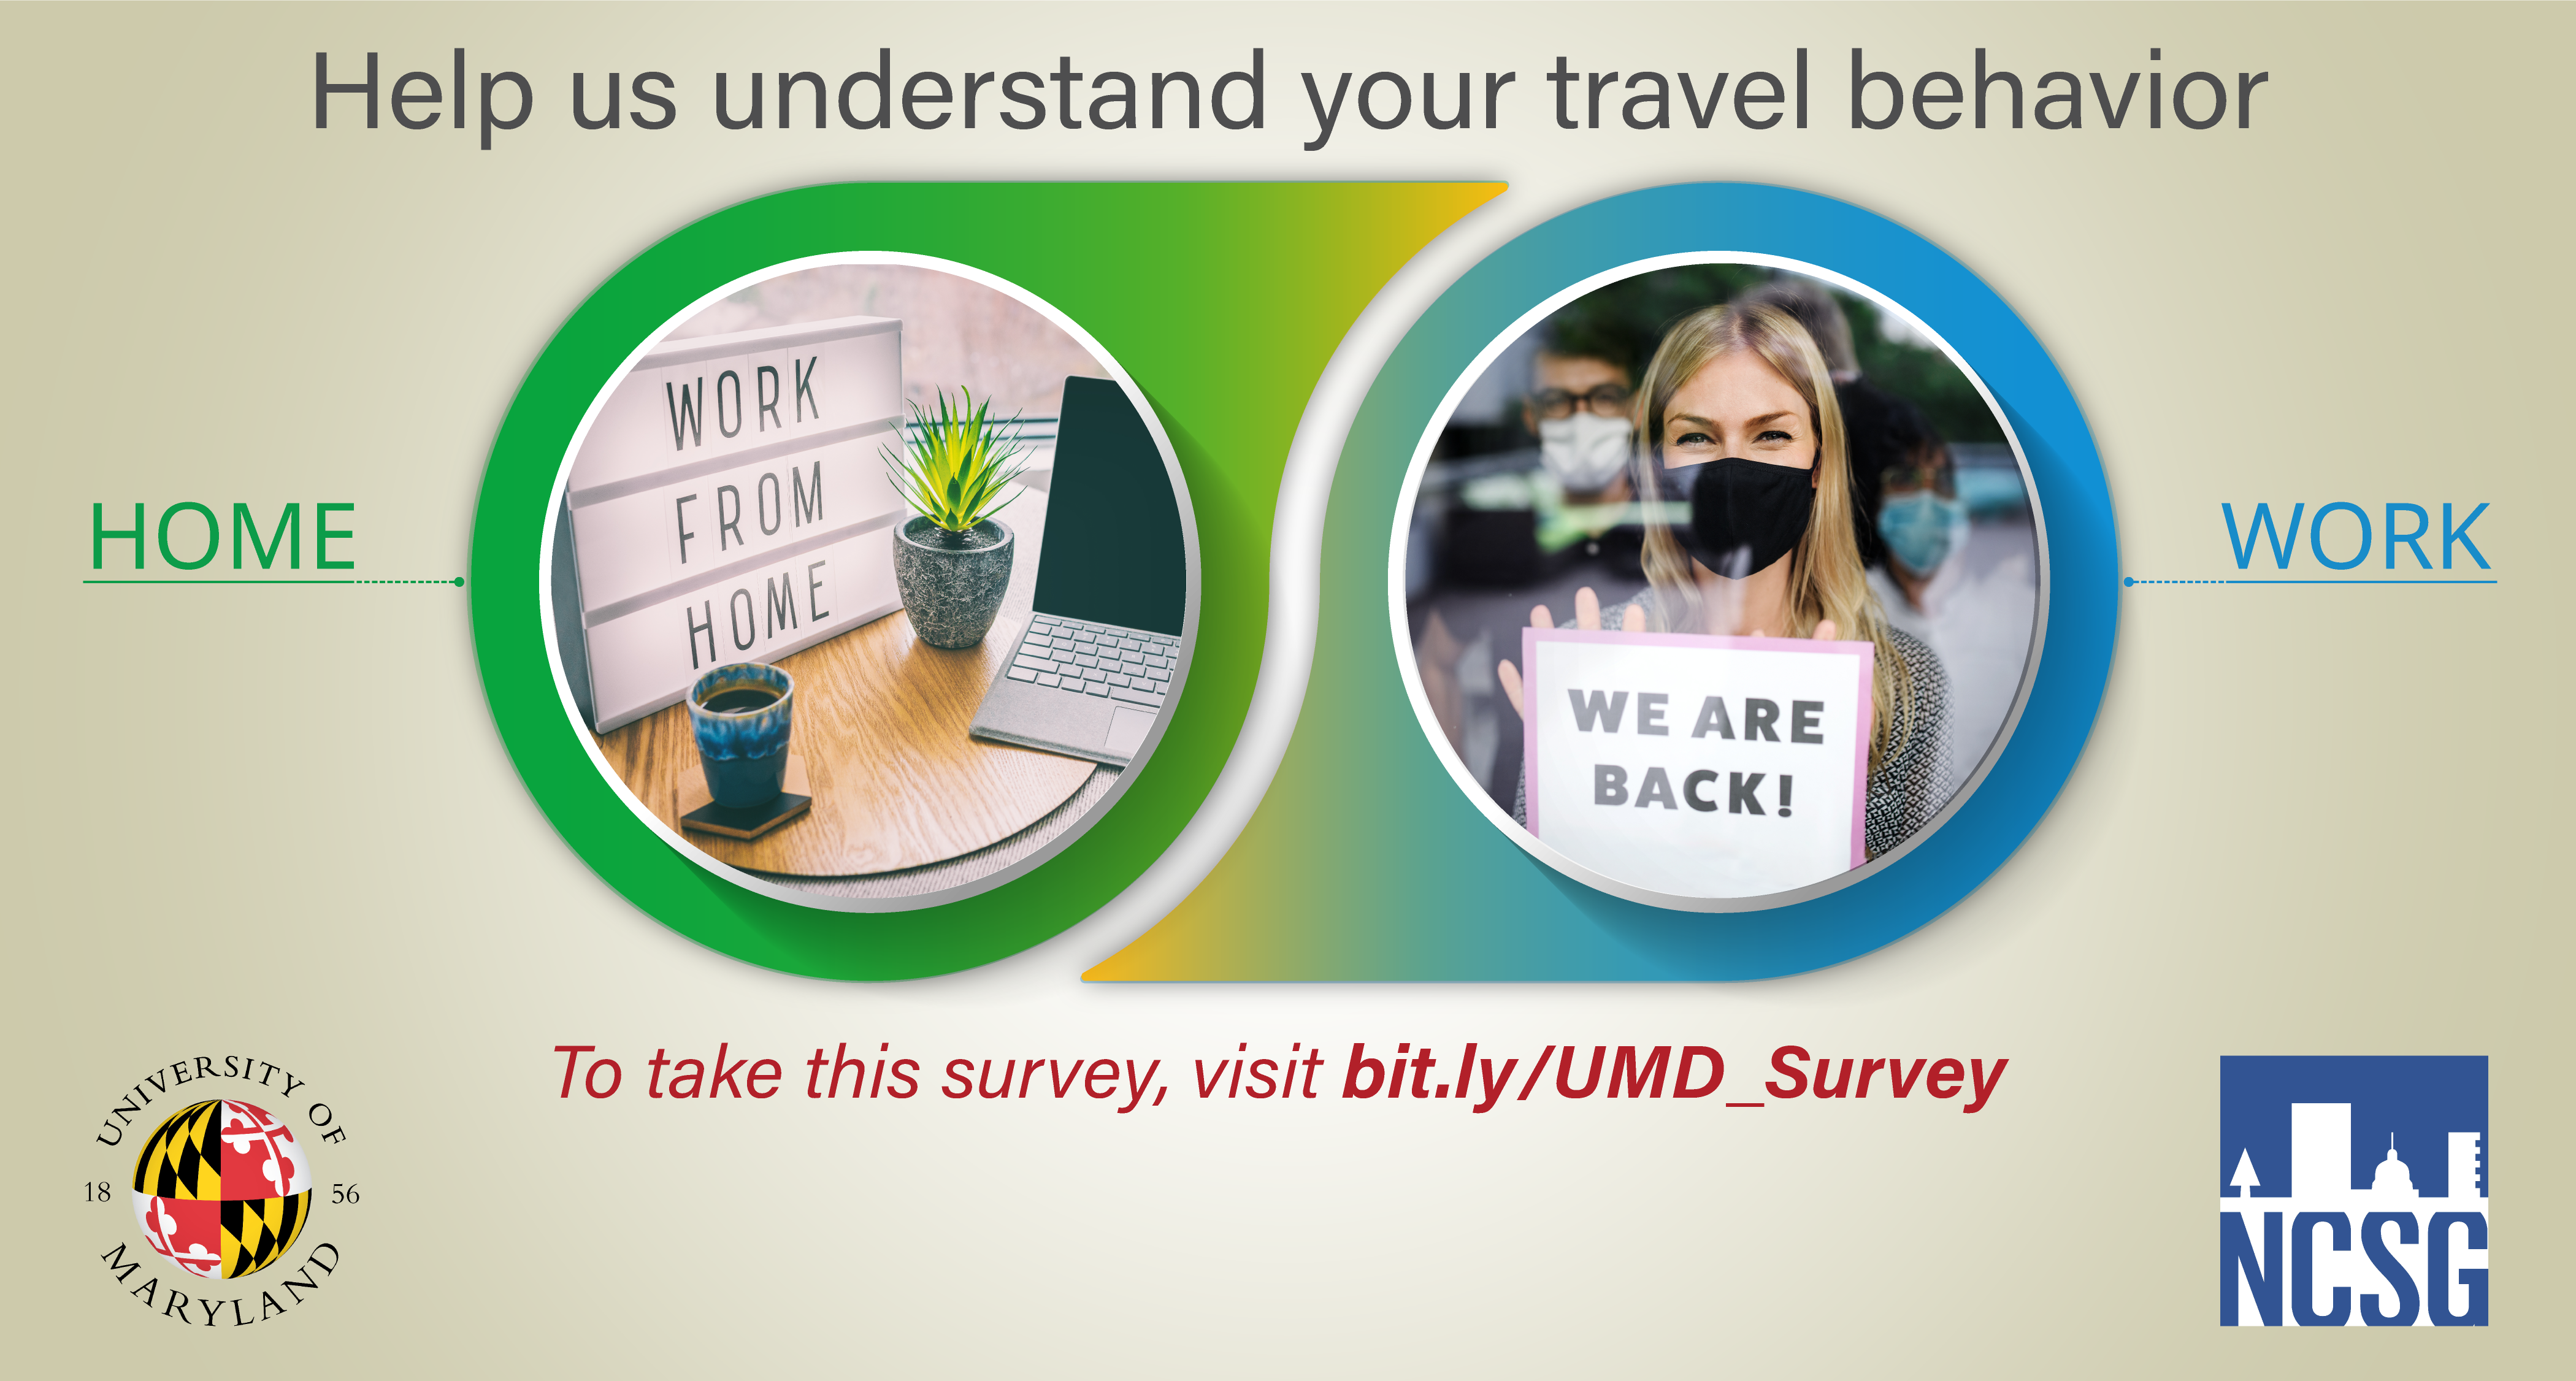 Travel behavior survey